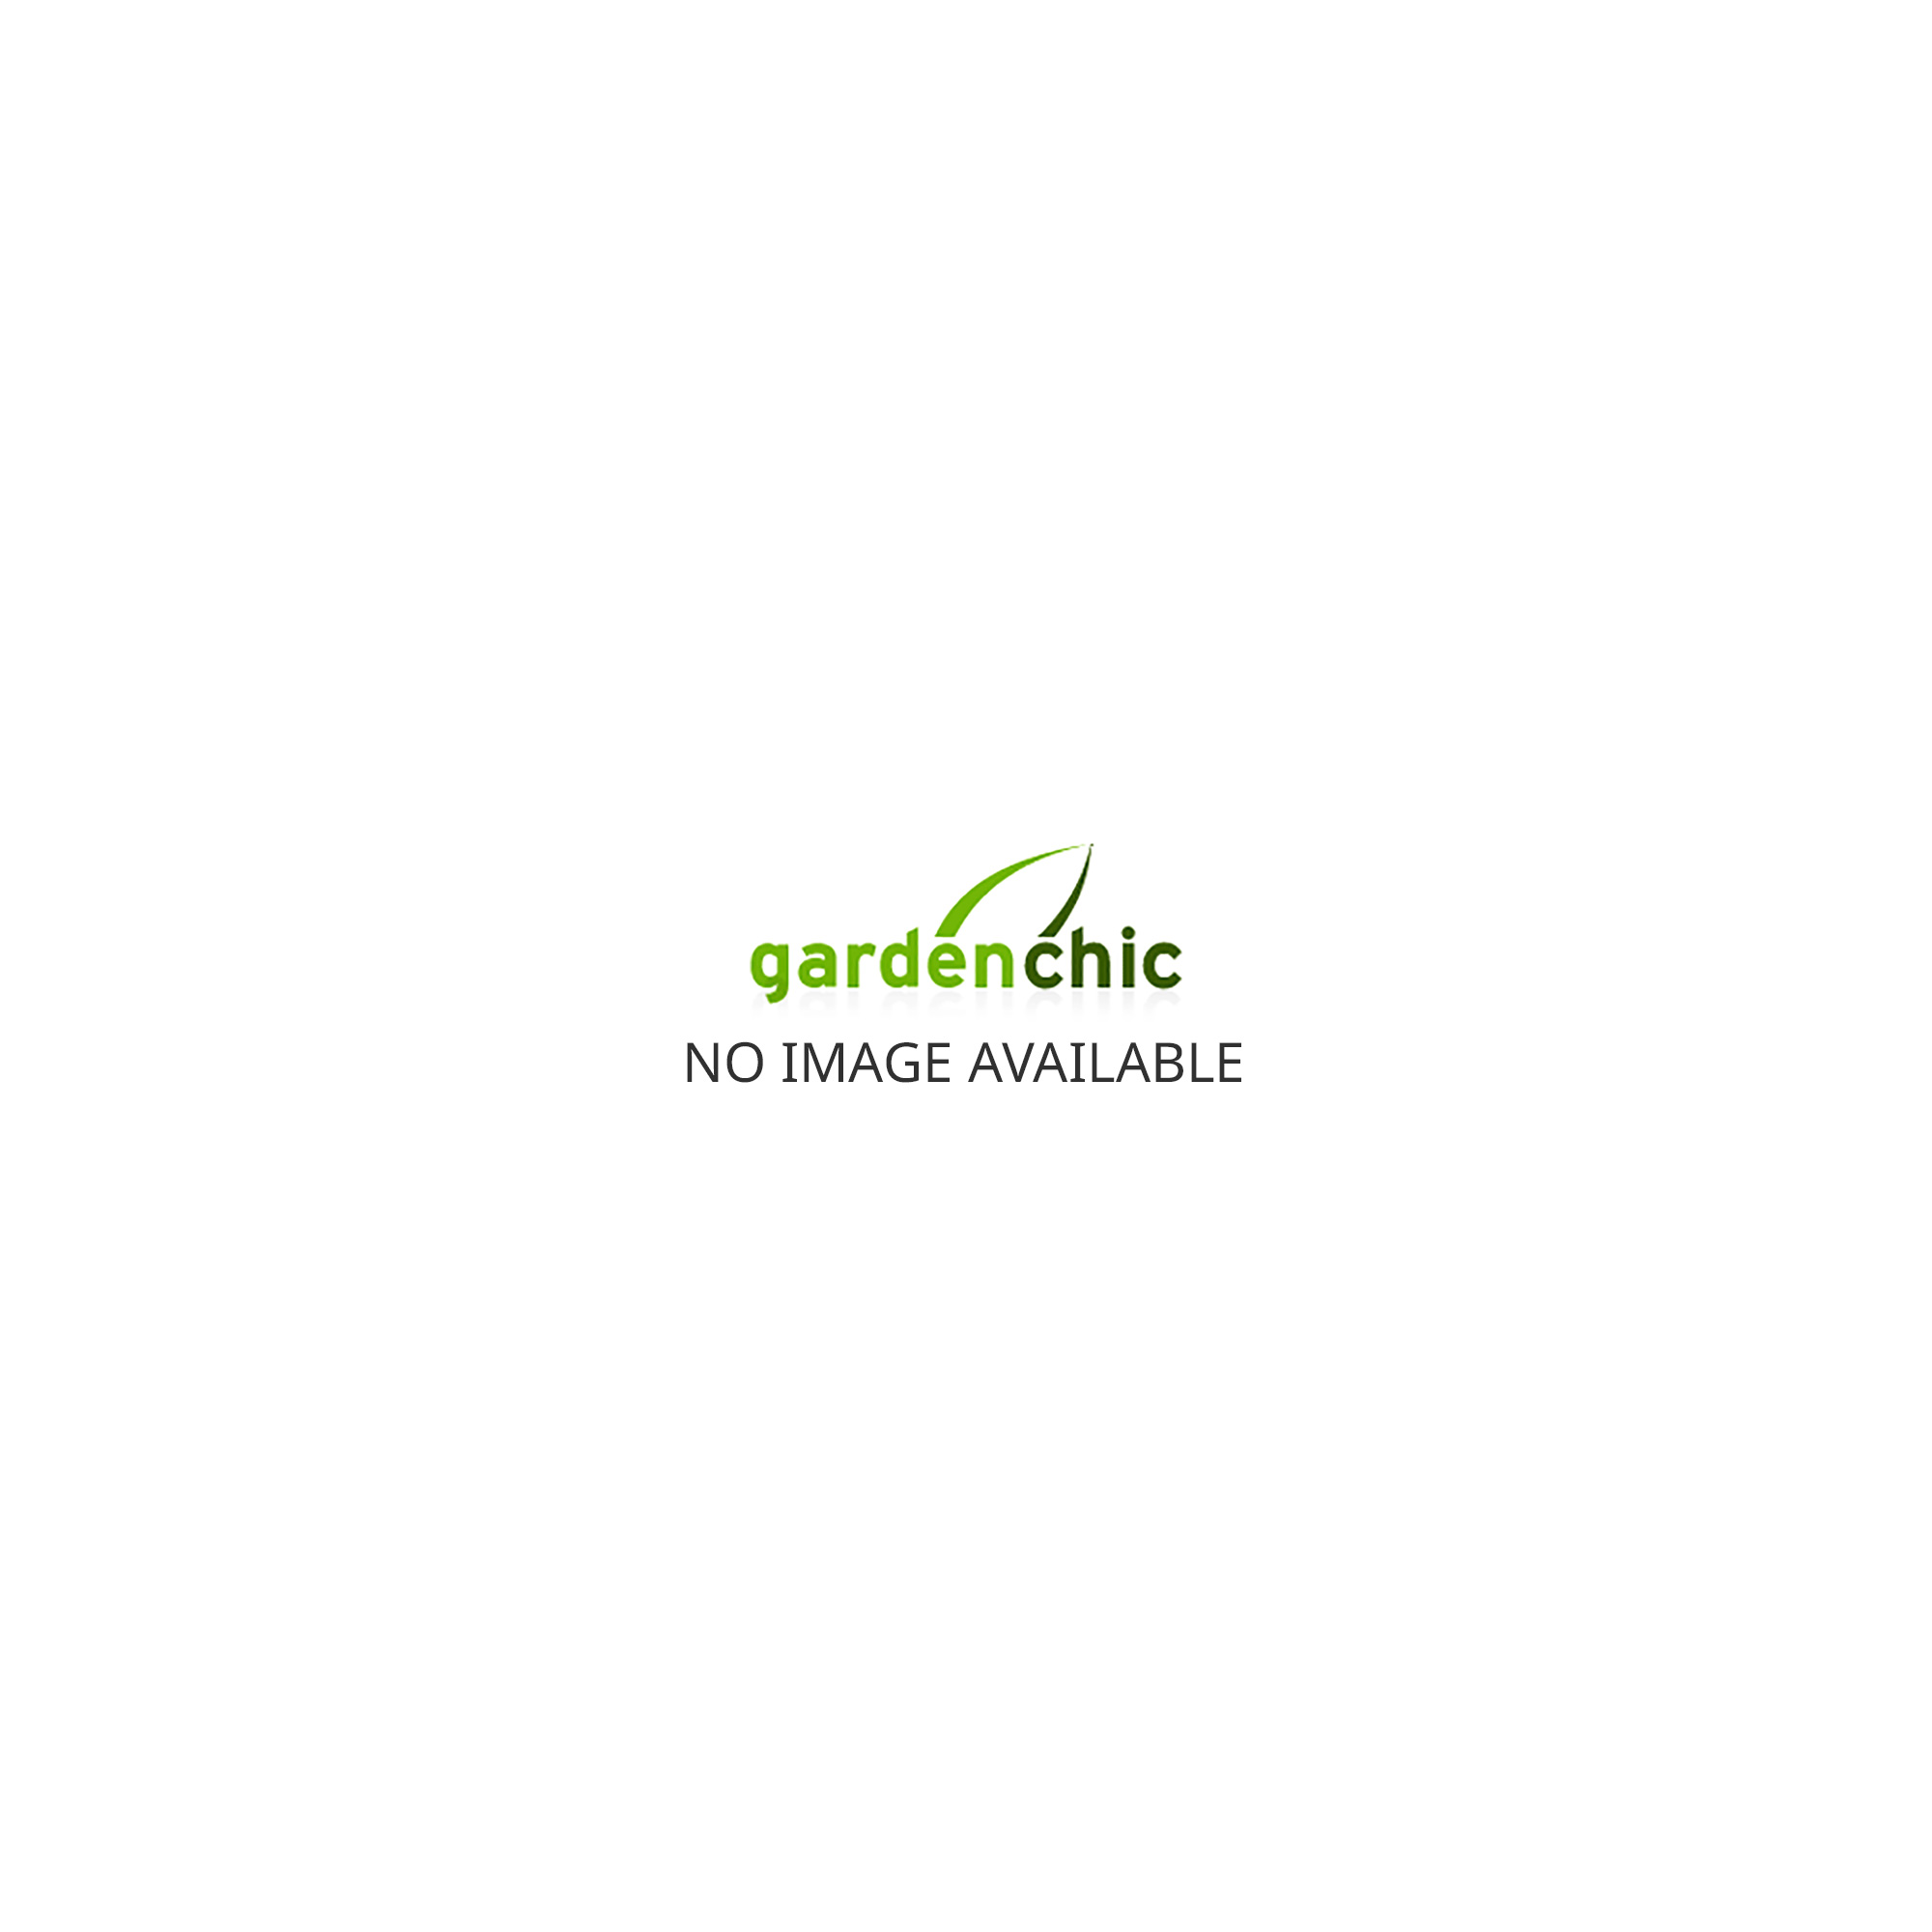 Apollo 7500 Greenhouse - Green - FREE Staging until APRIL 2018